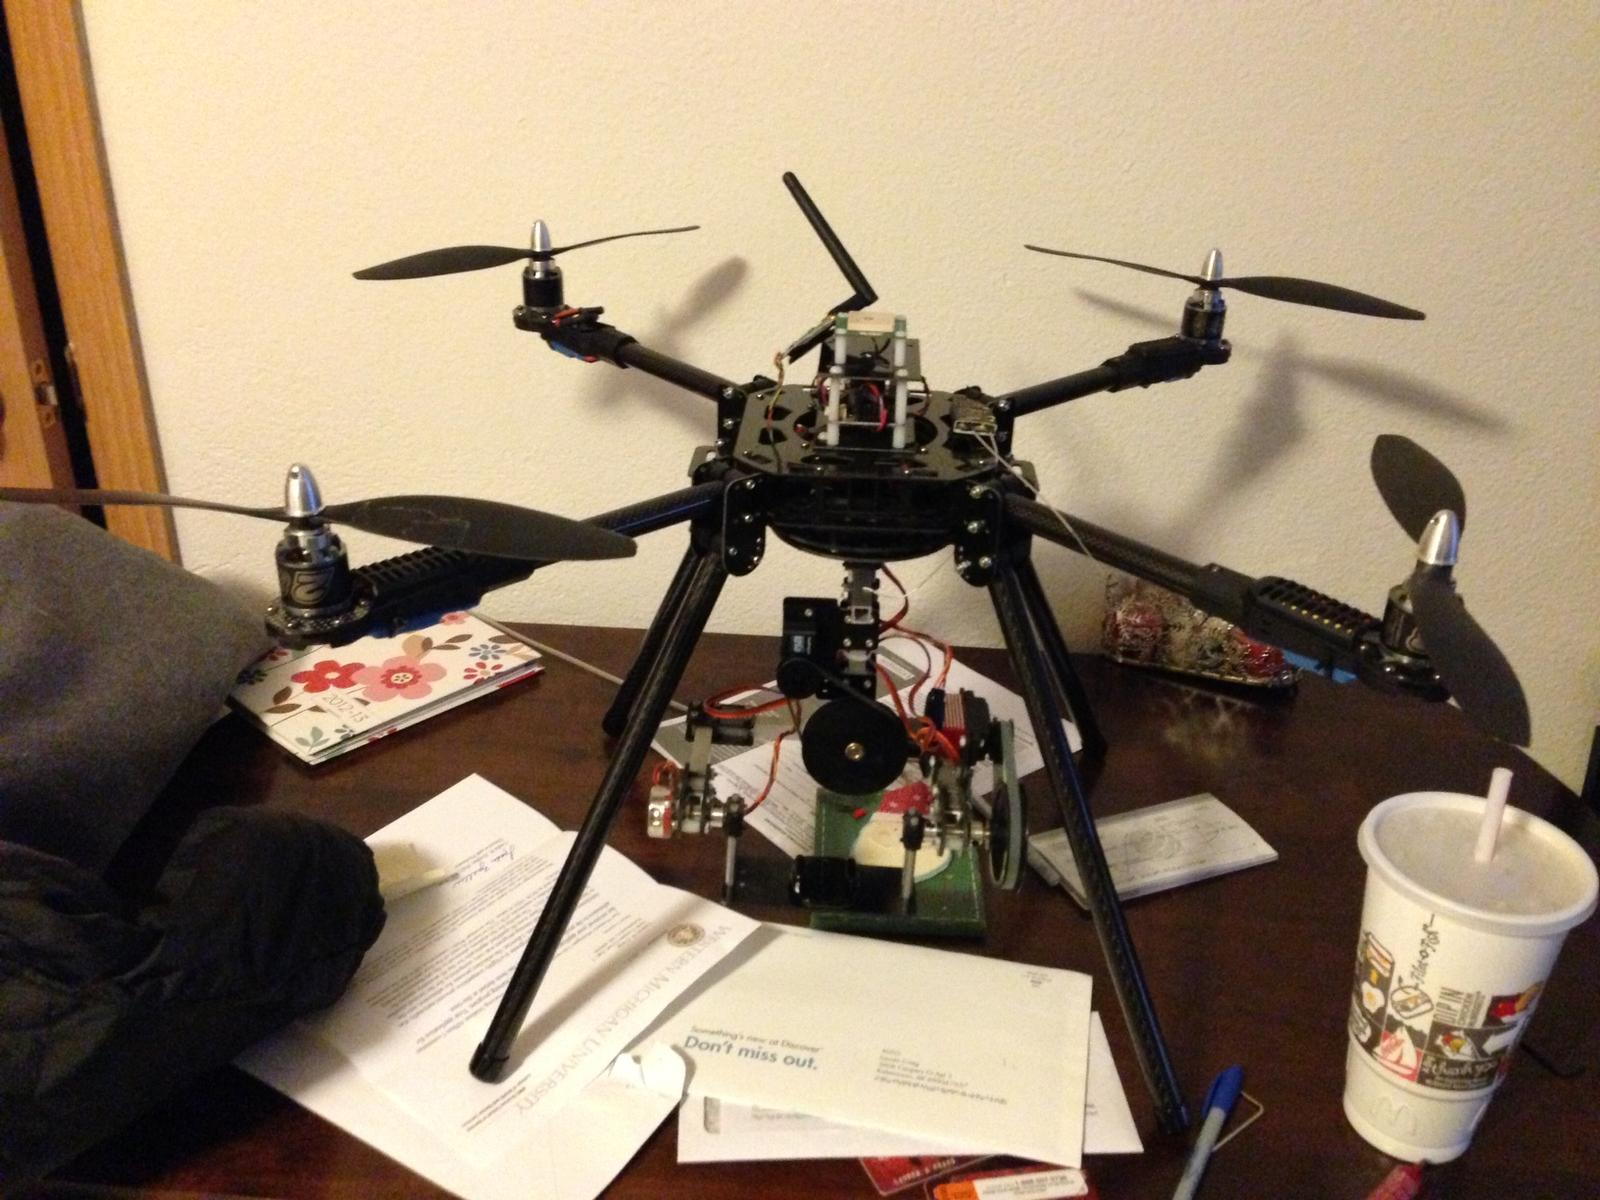 shows landing gear and damper, no gimbal included